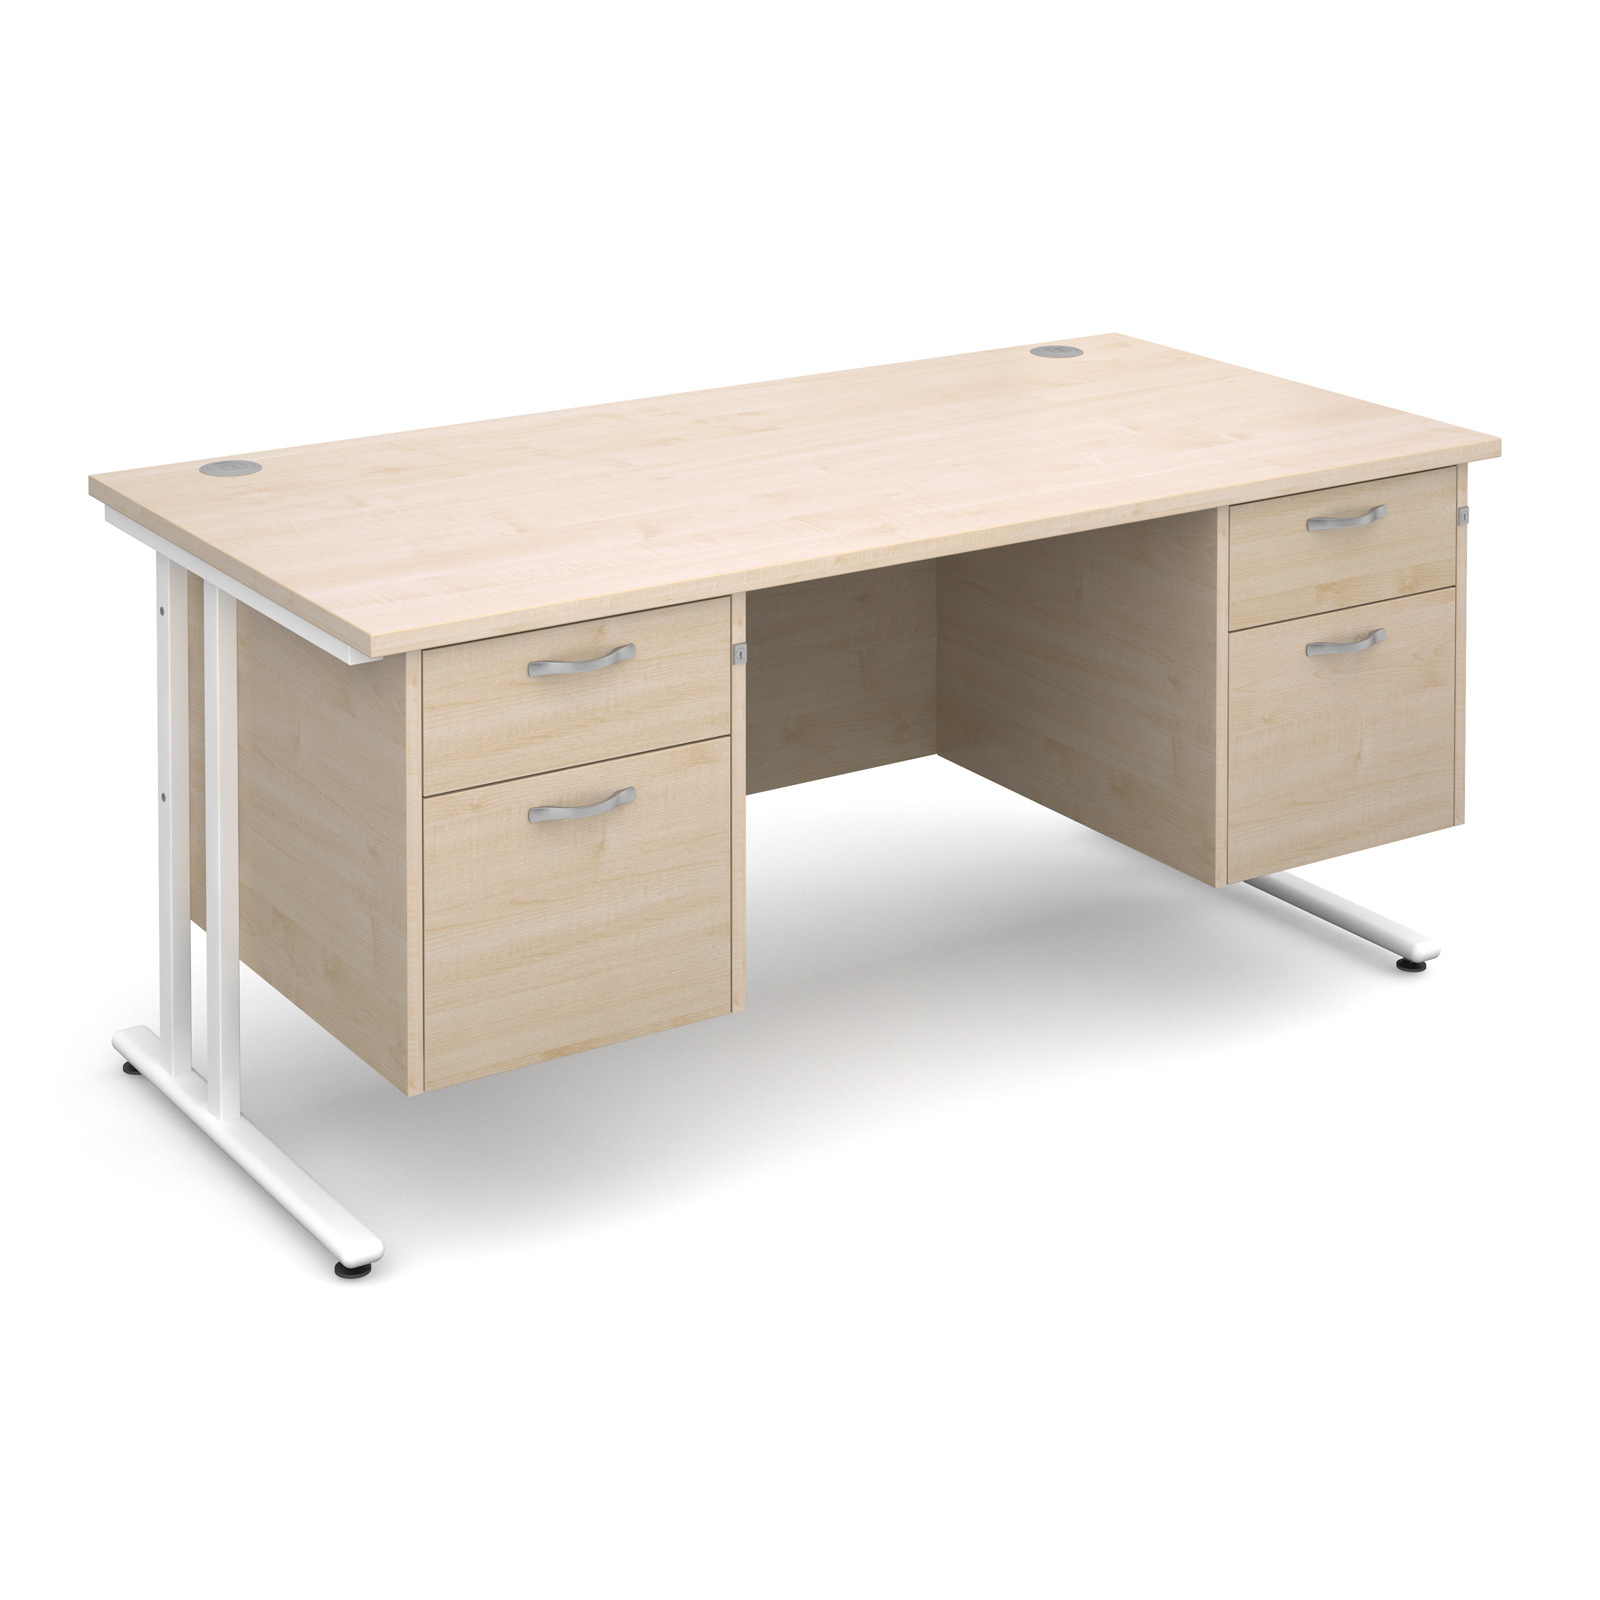 Dams Maestro 25 WL Maple Desk | Straight Double Pedestal